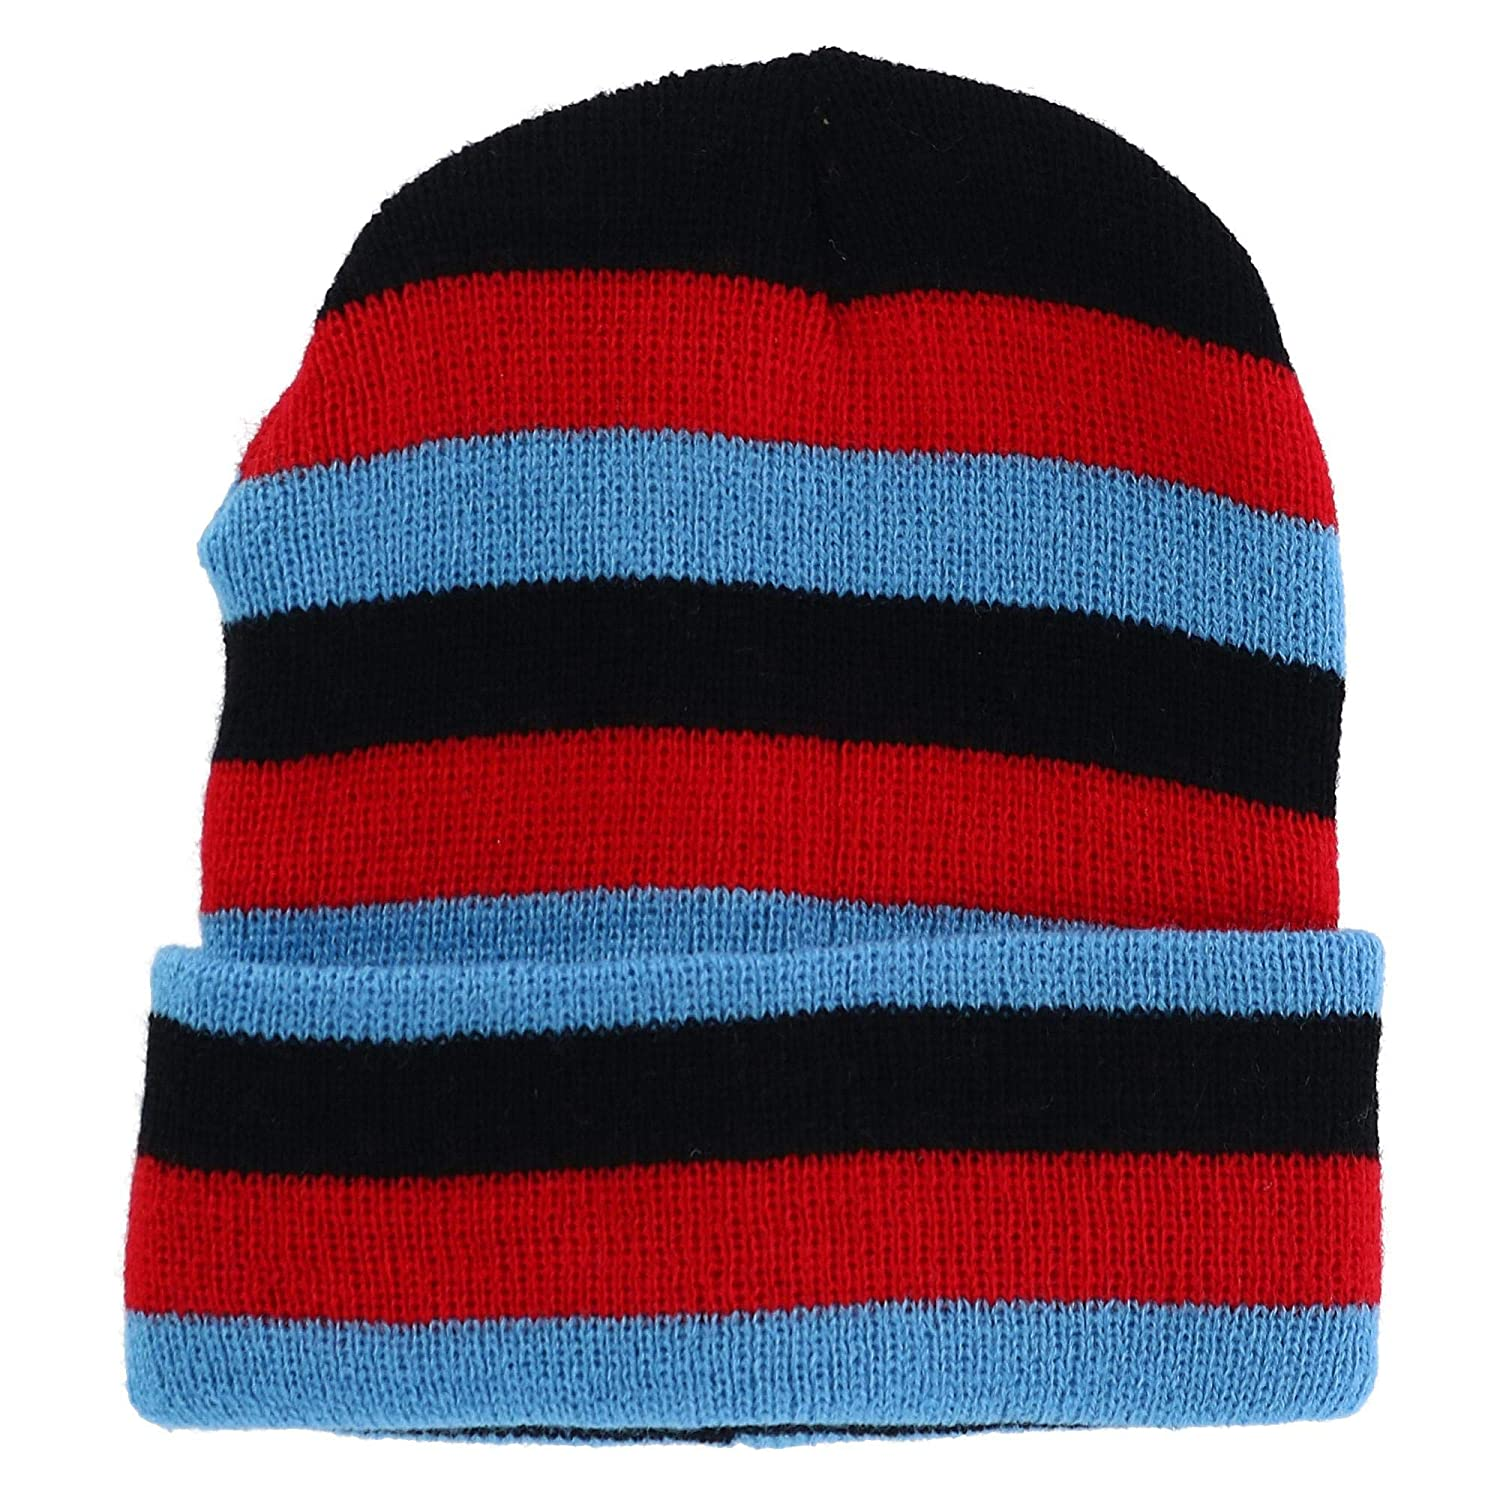 Grand Sierra Kids' Striped Cuff Beanie Cap Blue